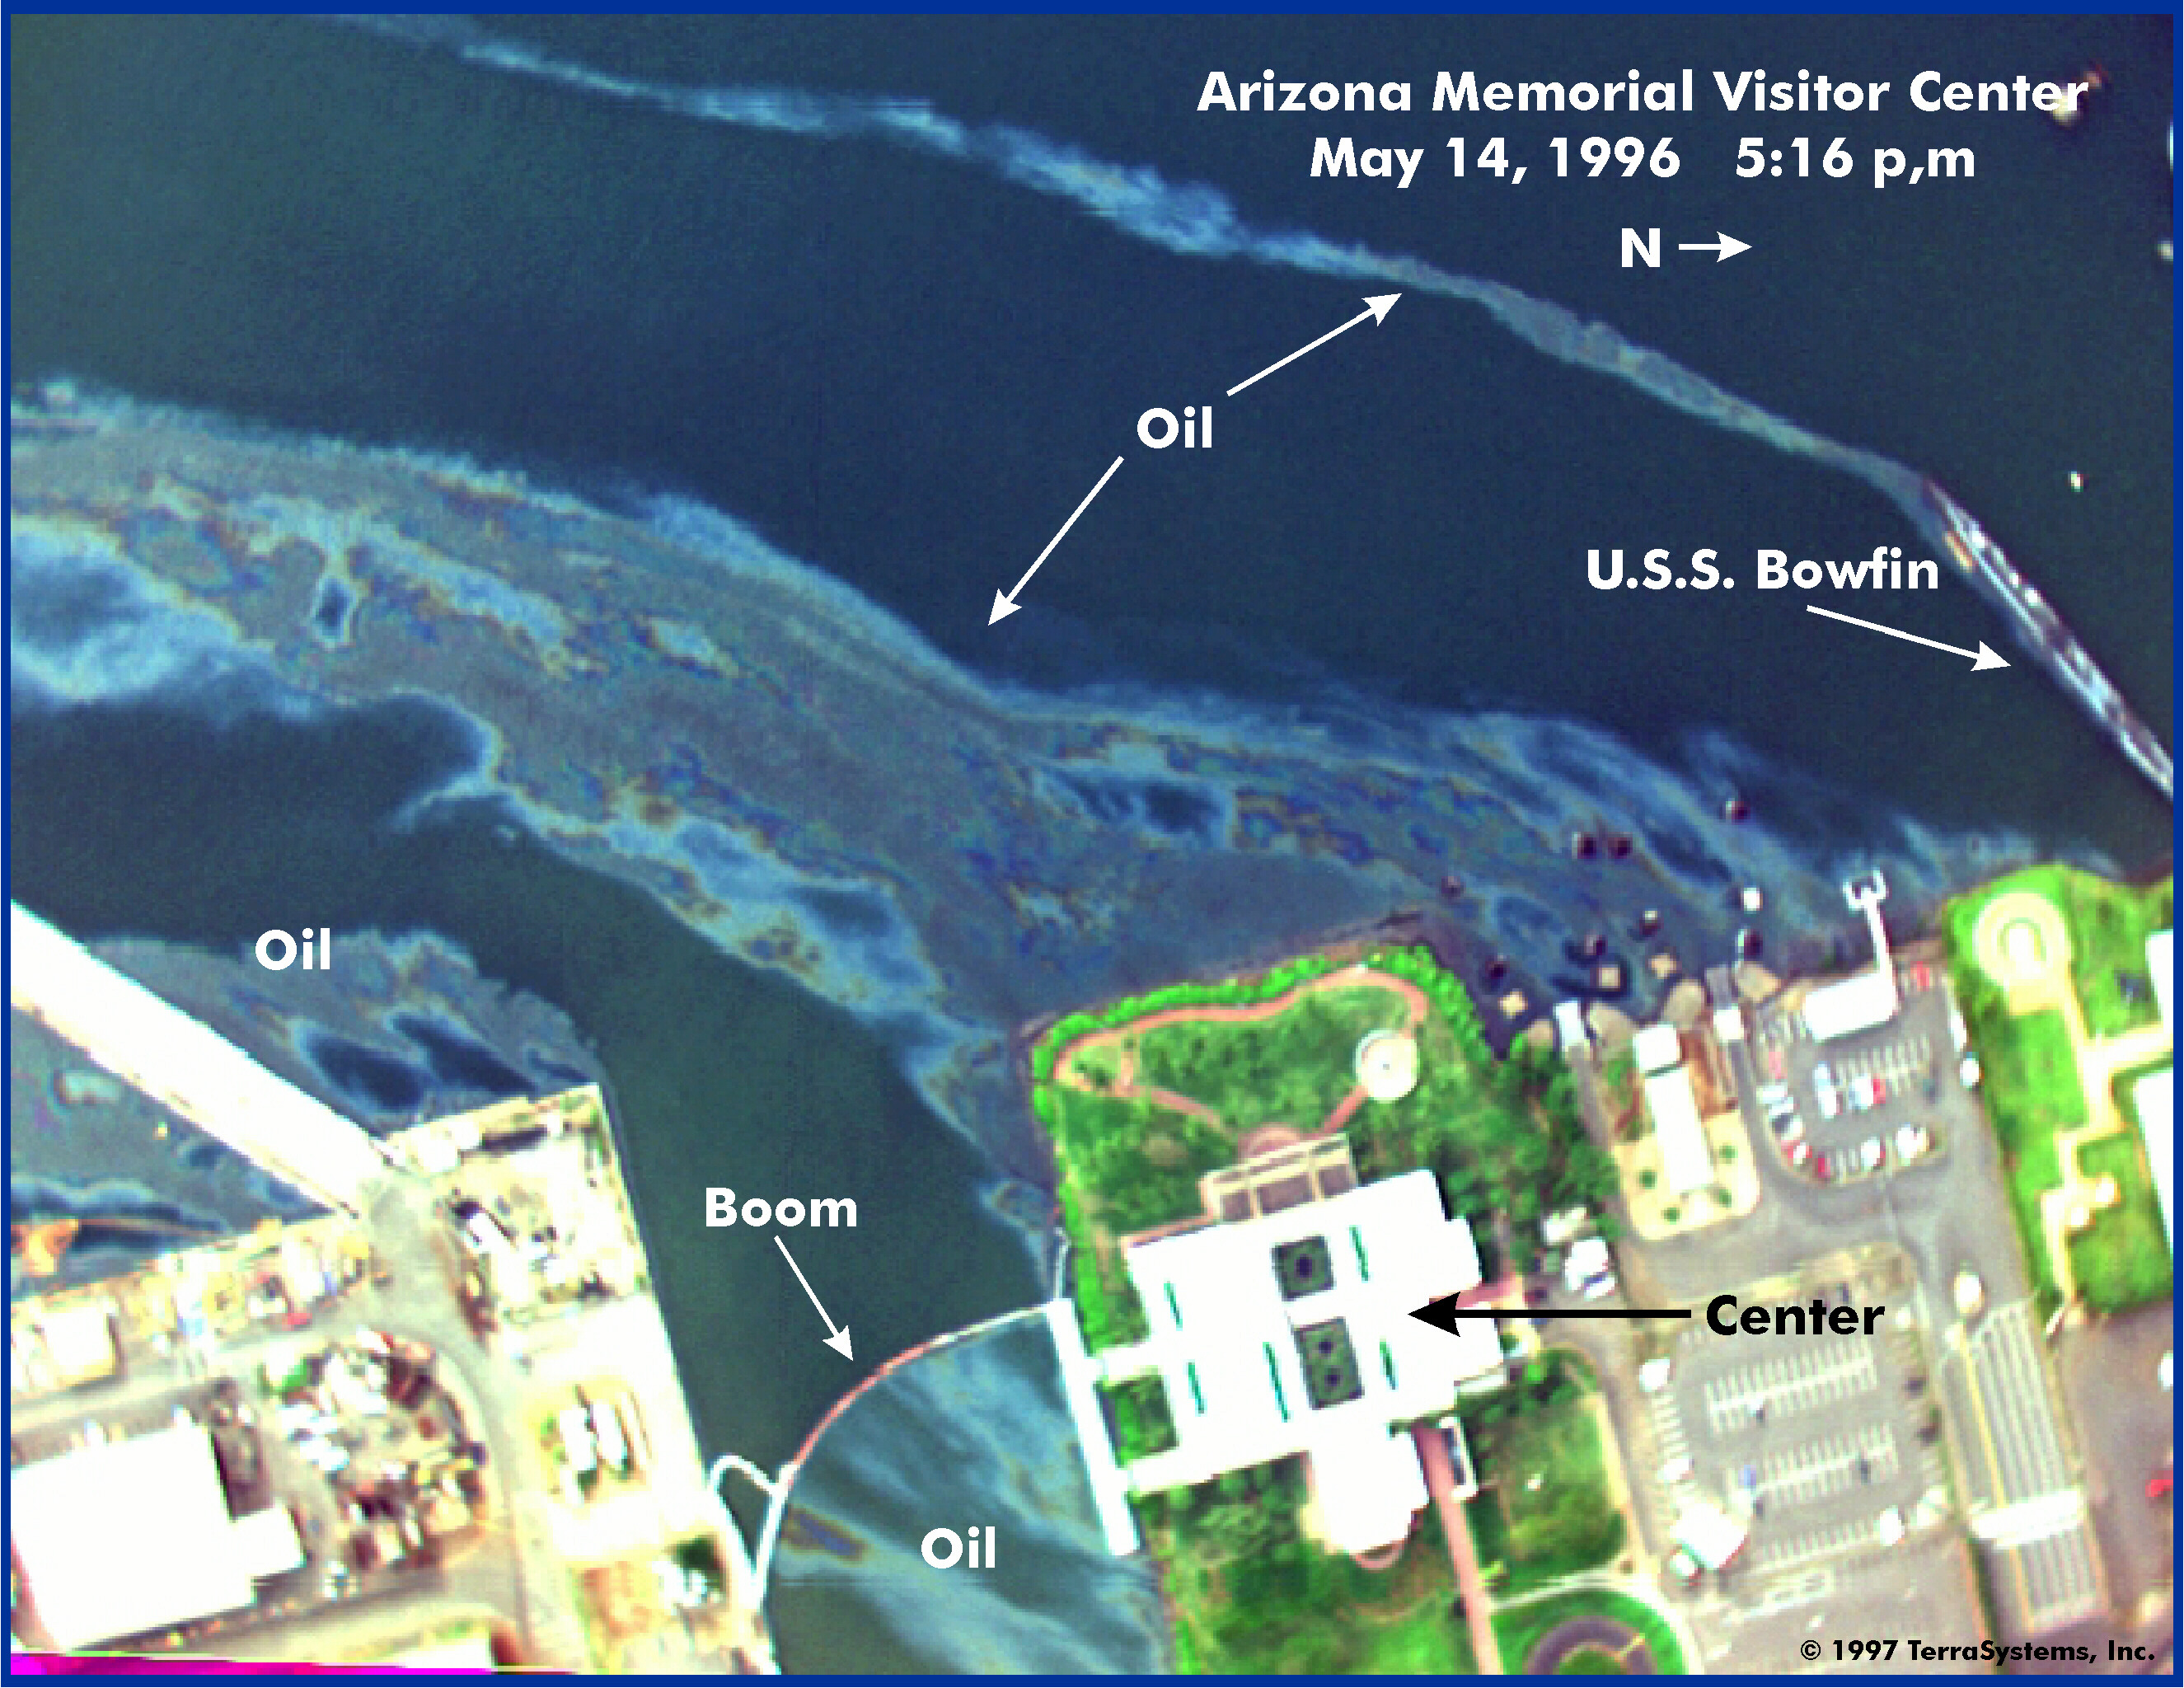 Aerial view of USS Arizona Memorial Visitor Center, on the shoreline of East Loch, Pearl Harbor, Oahu, Hawaii (Courtesy of NOAA).